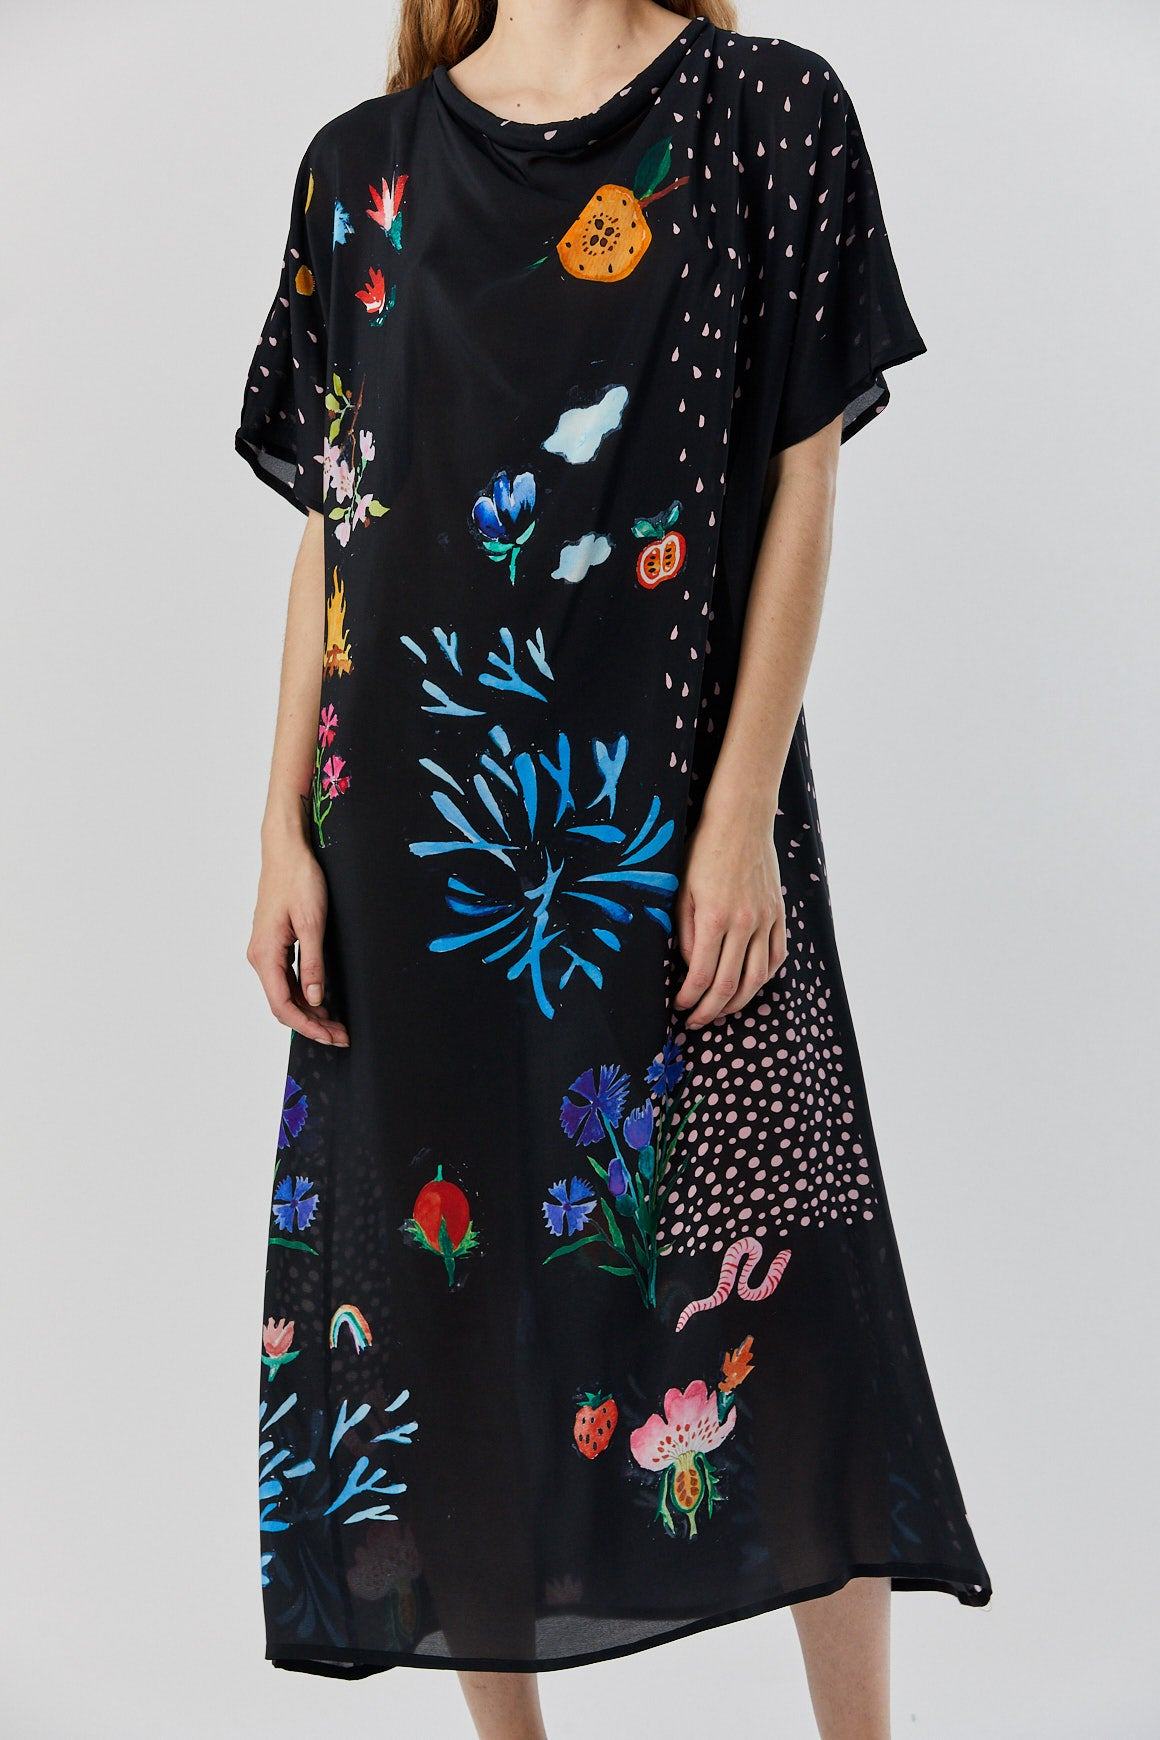 ANNTIAN - garden party dress, Black Floral